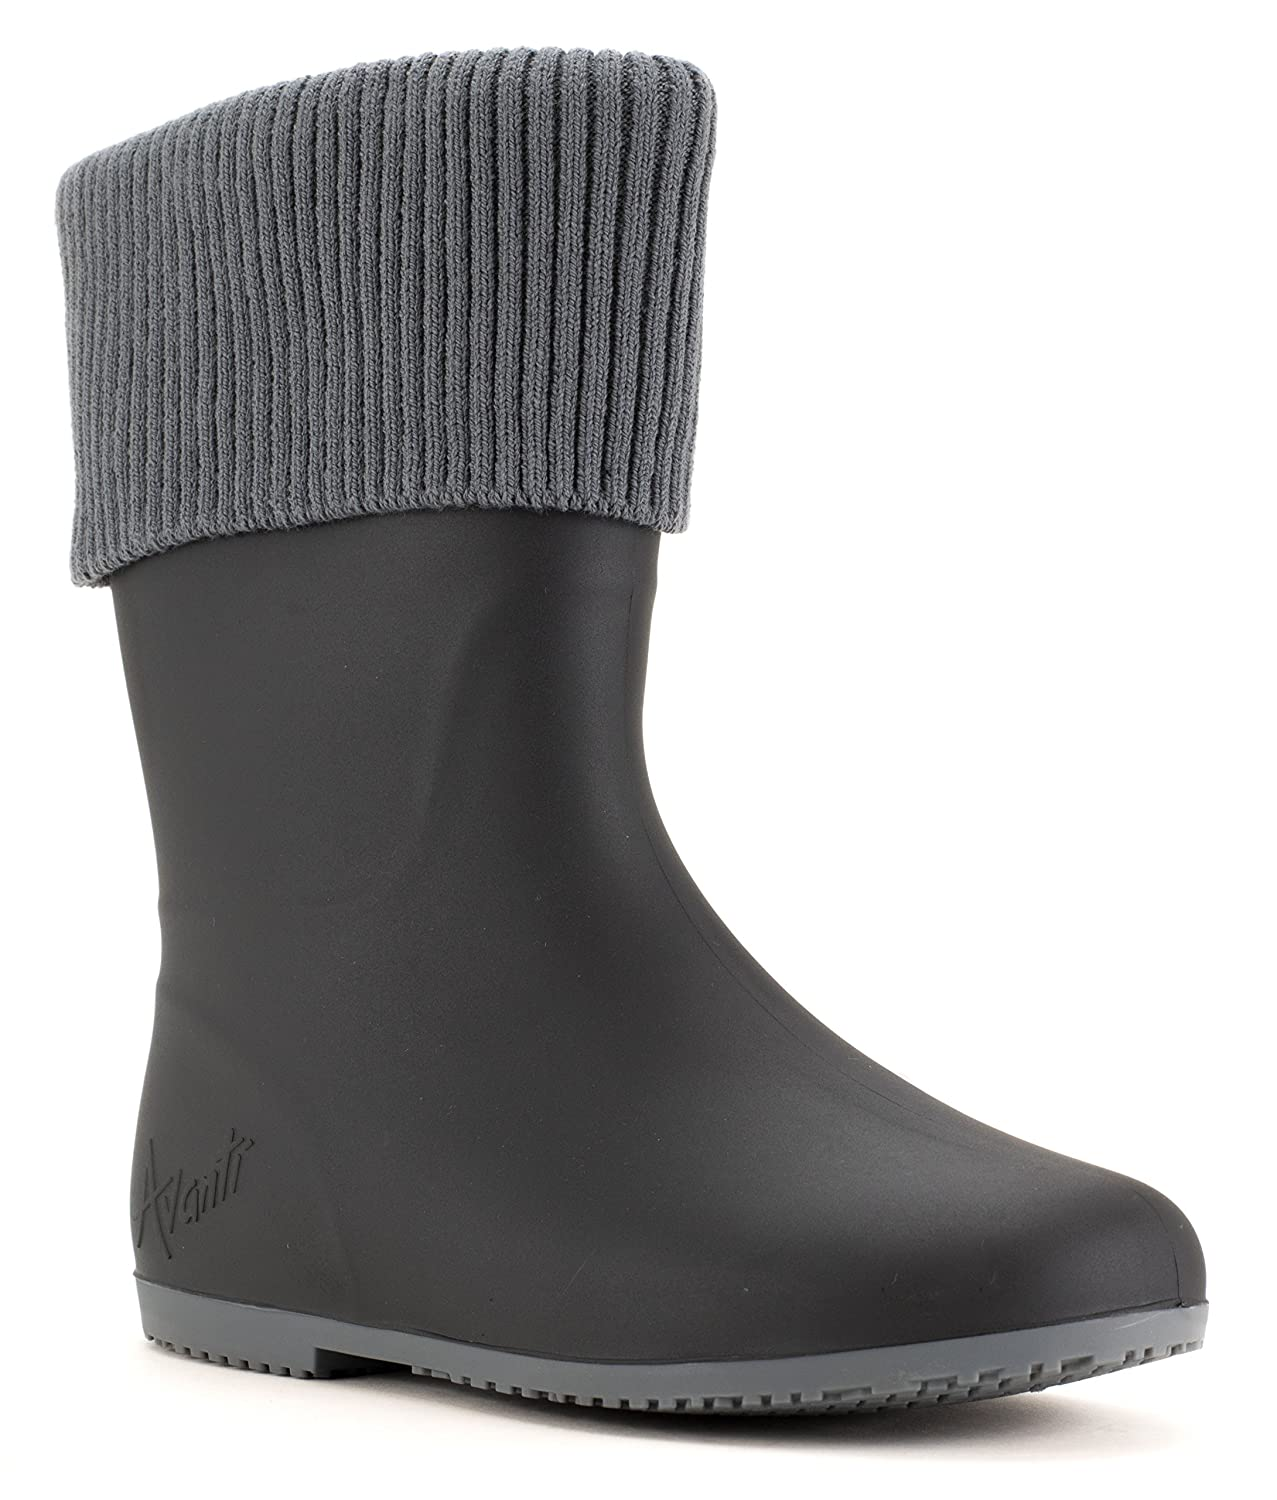 Avanti Storm Rain Boot Waterproof With Removable Knitted Cuff Monogram-Able Foldable B078RRM99Z 6 B(M) US|Black and Grey